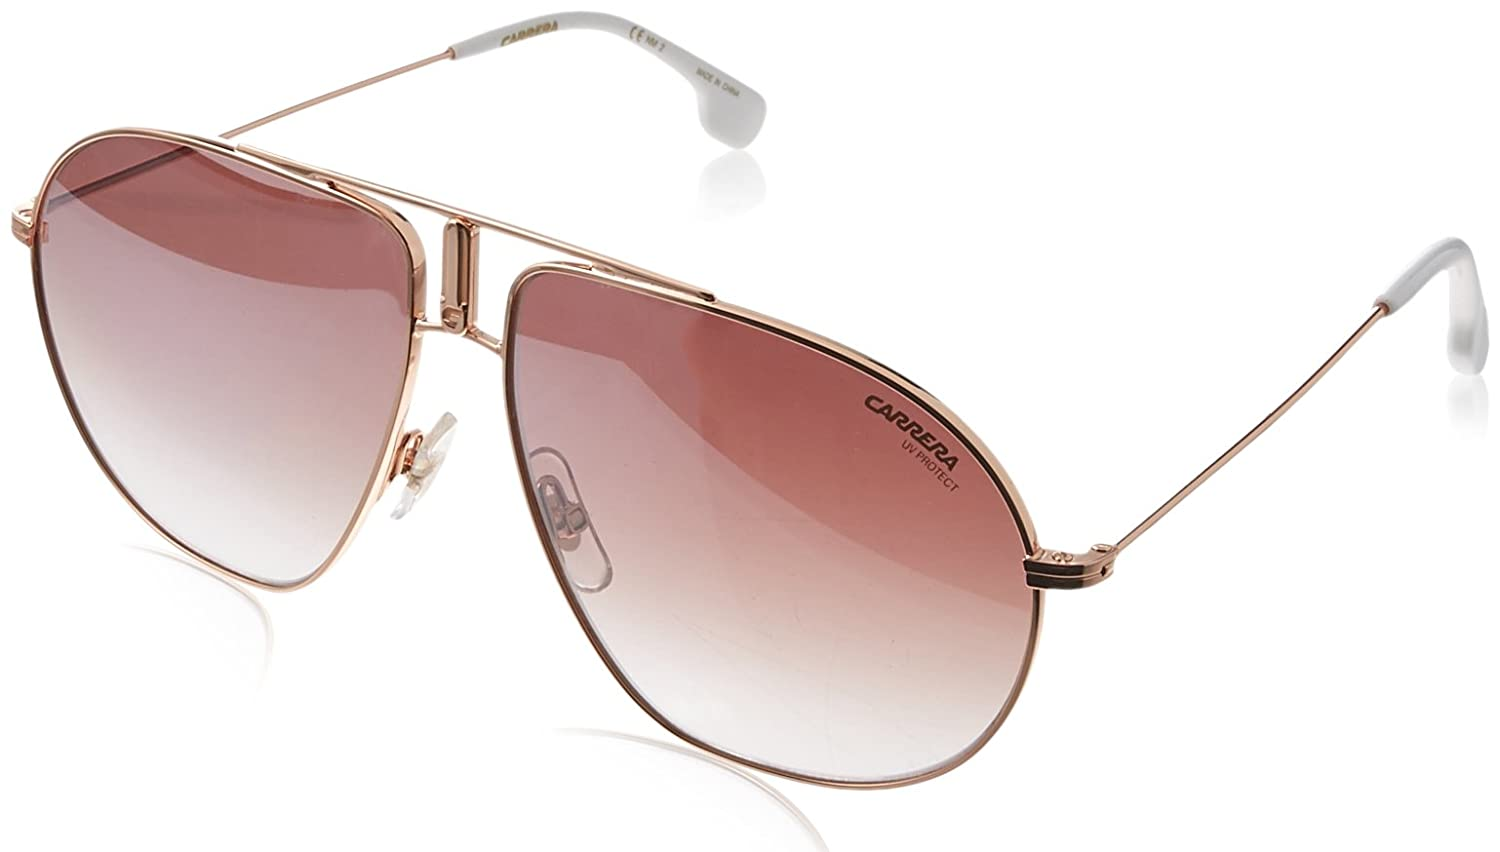 Carrera Mens Bound//s Non-Polarized Iridium Aviator Sunglasses Gold Copper 60 mm